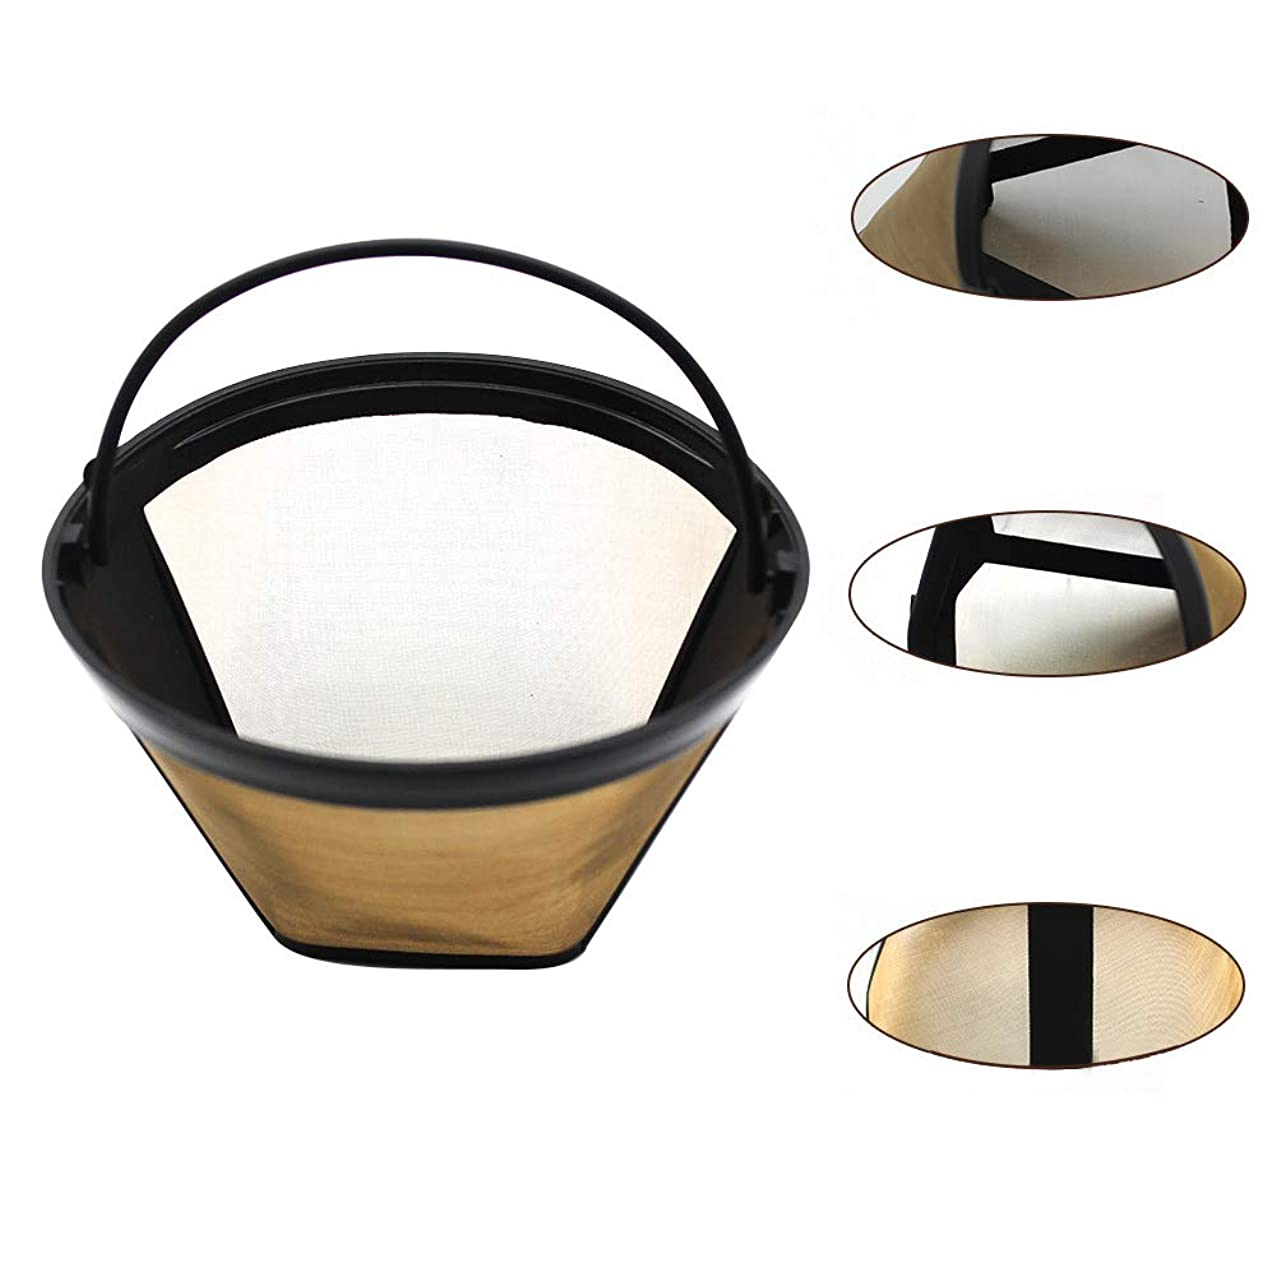 Hand grinder,longdelaY6 Stainless Steel Reusable Cone Shaped Coffee Filter Strainer Kitchen Accessories